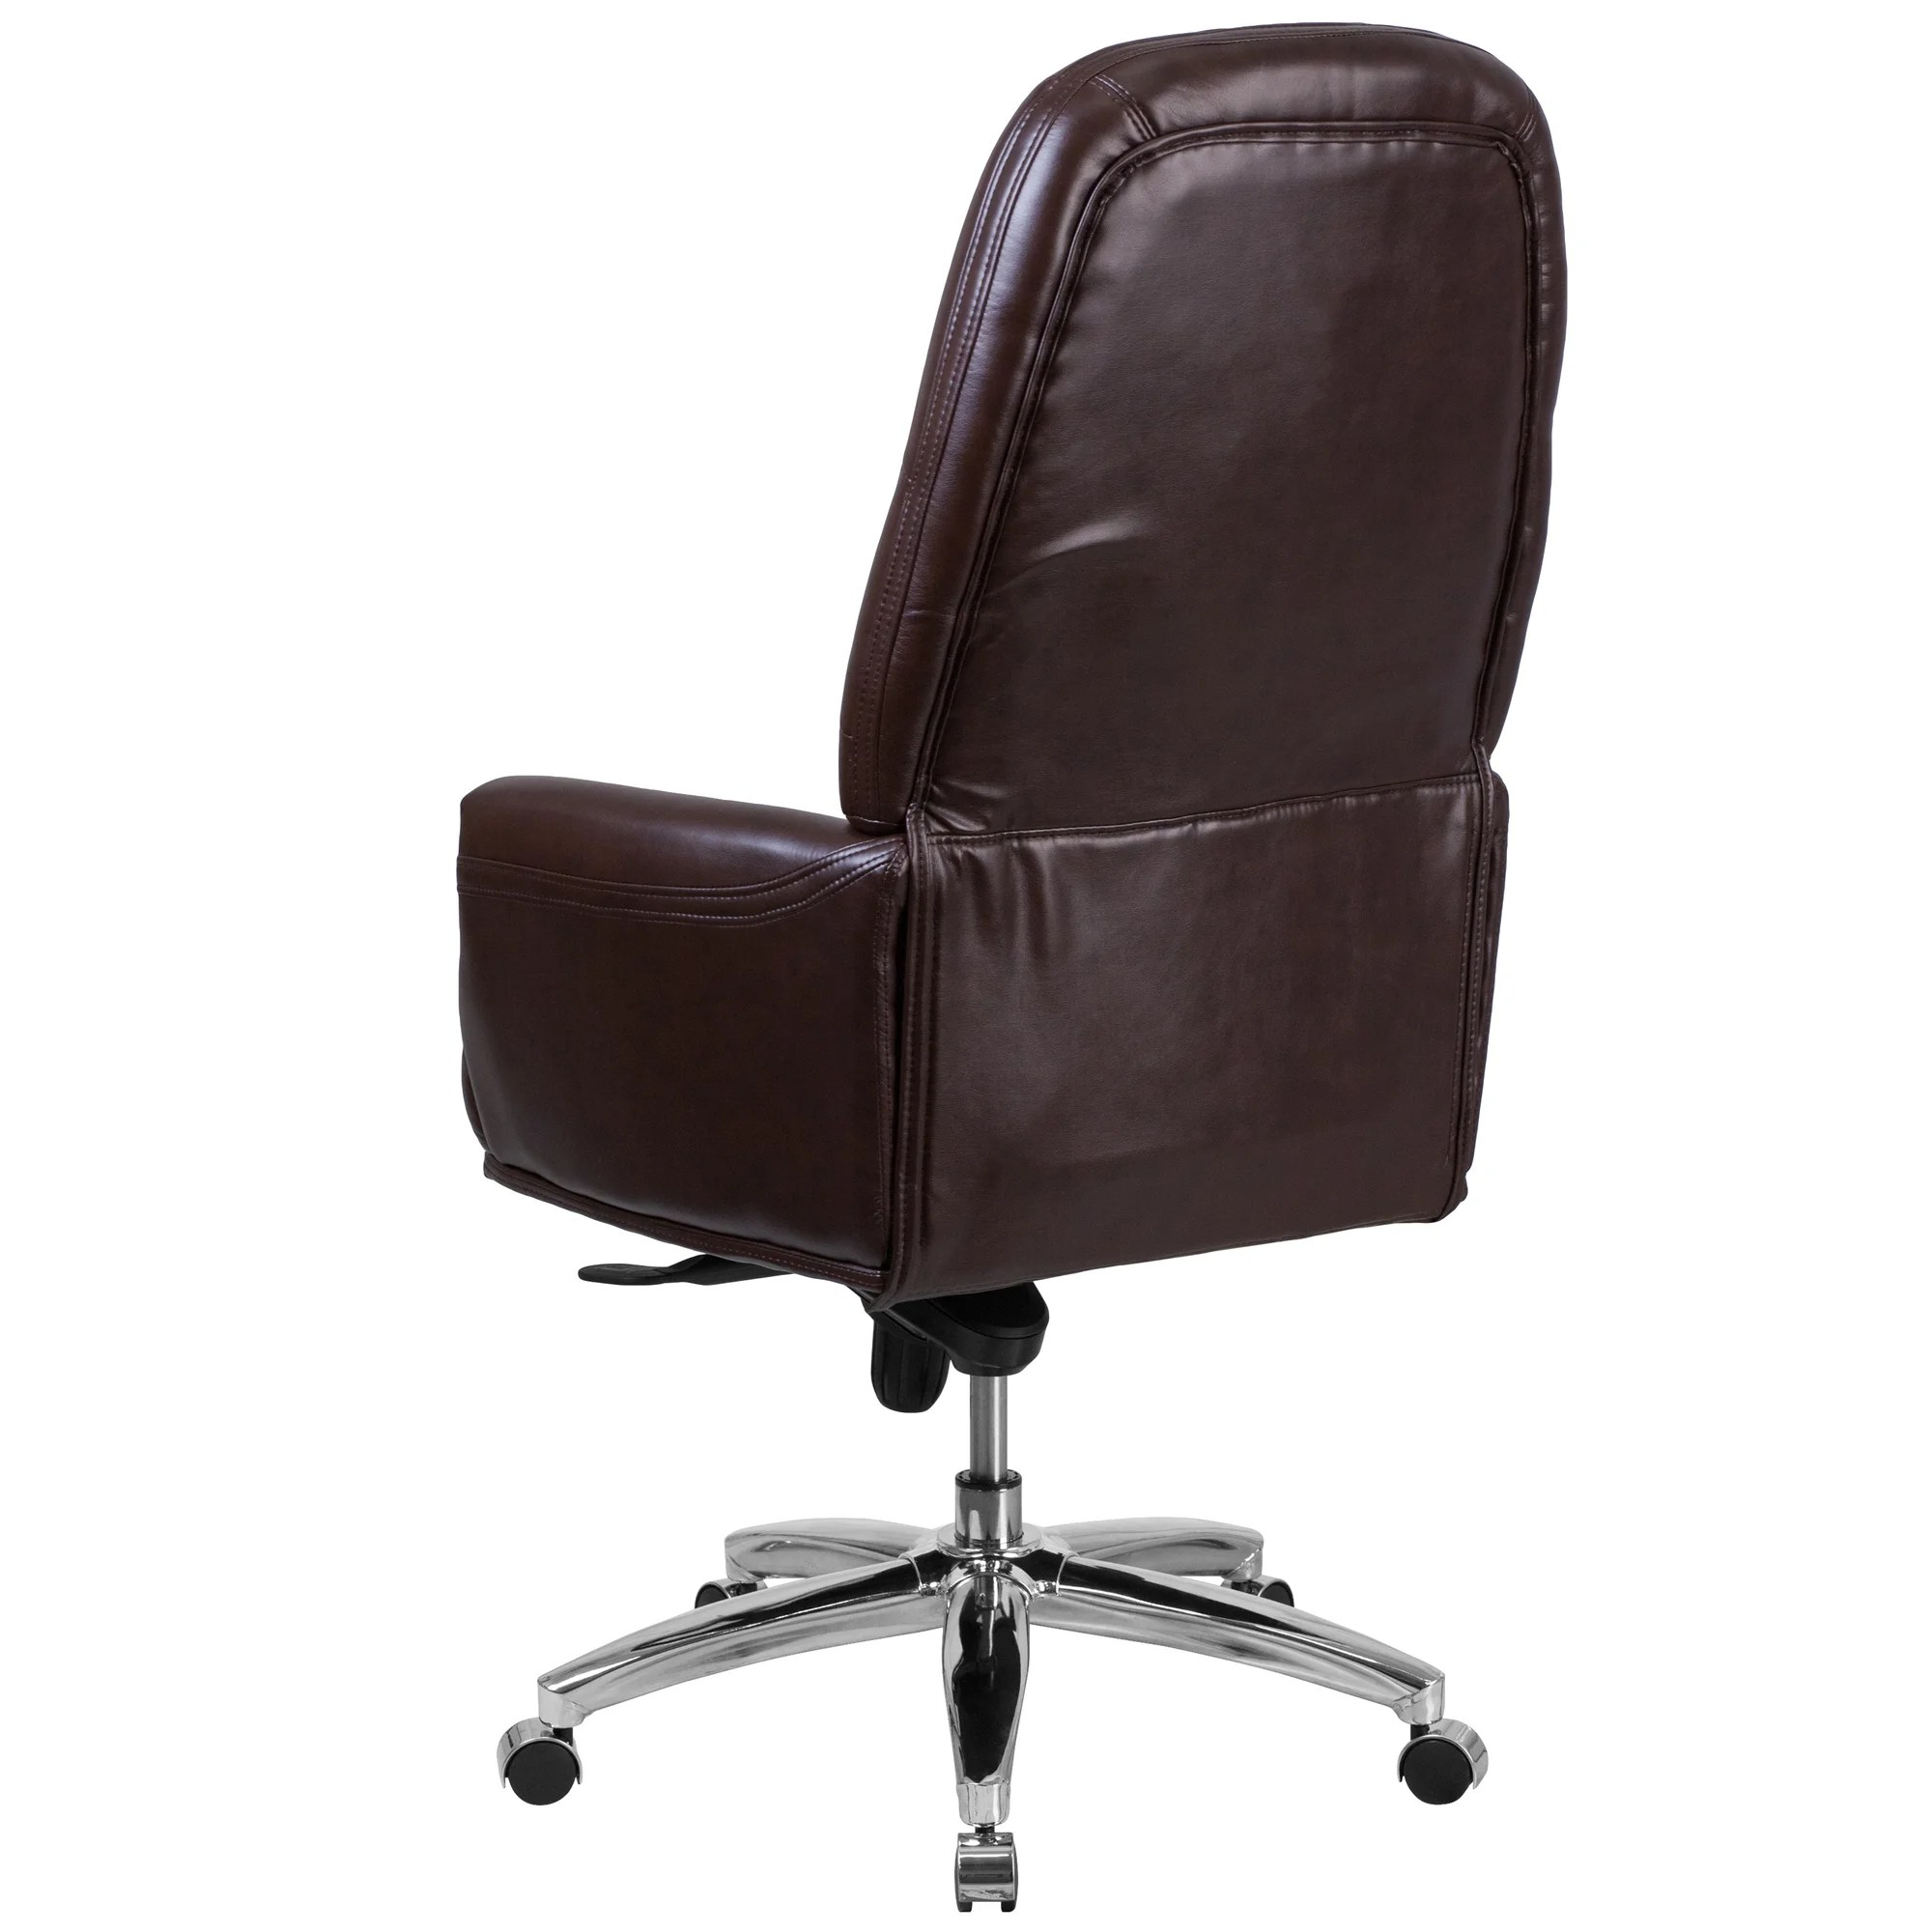 Tufted Leather Office Chair Details About Lamanna High Back Traditional Tufted 29